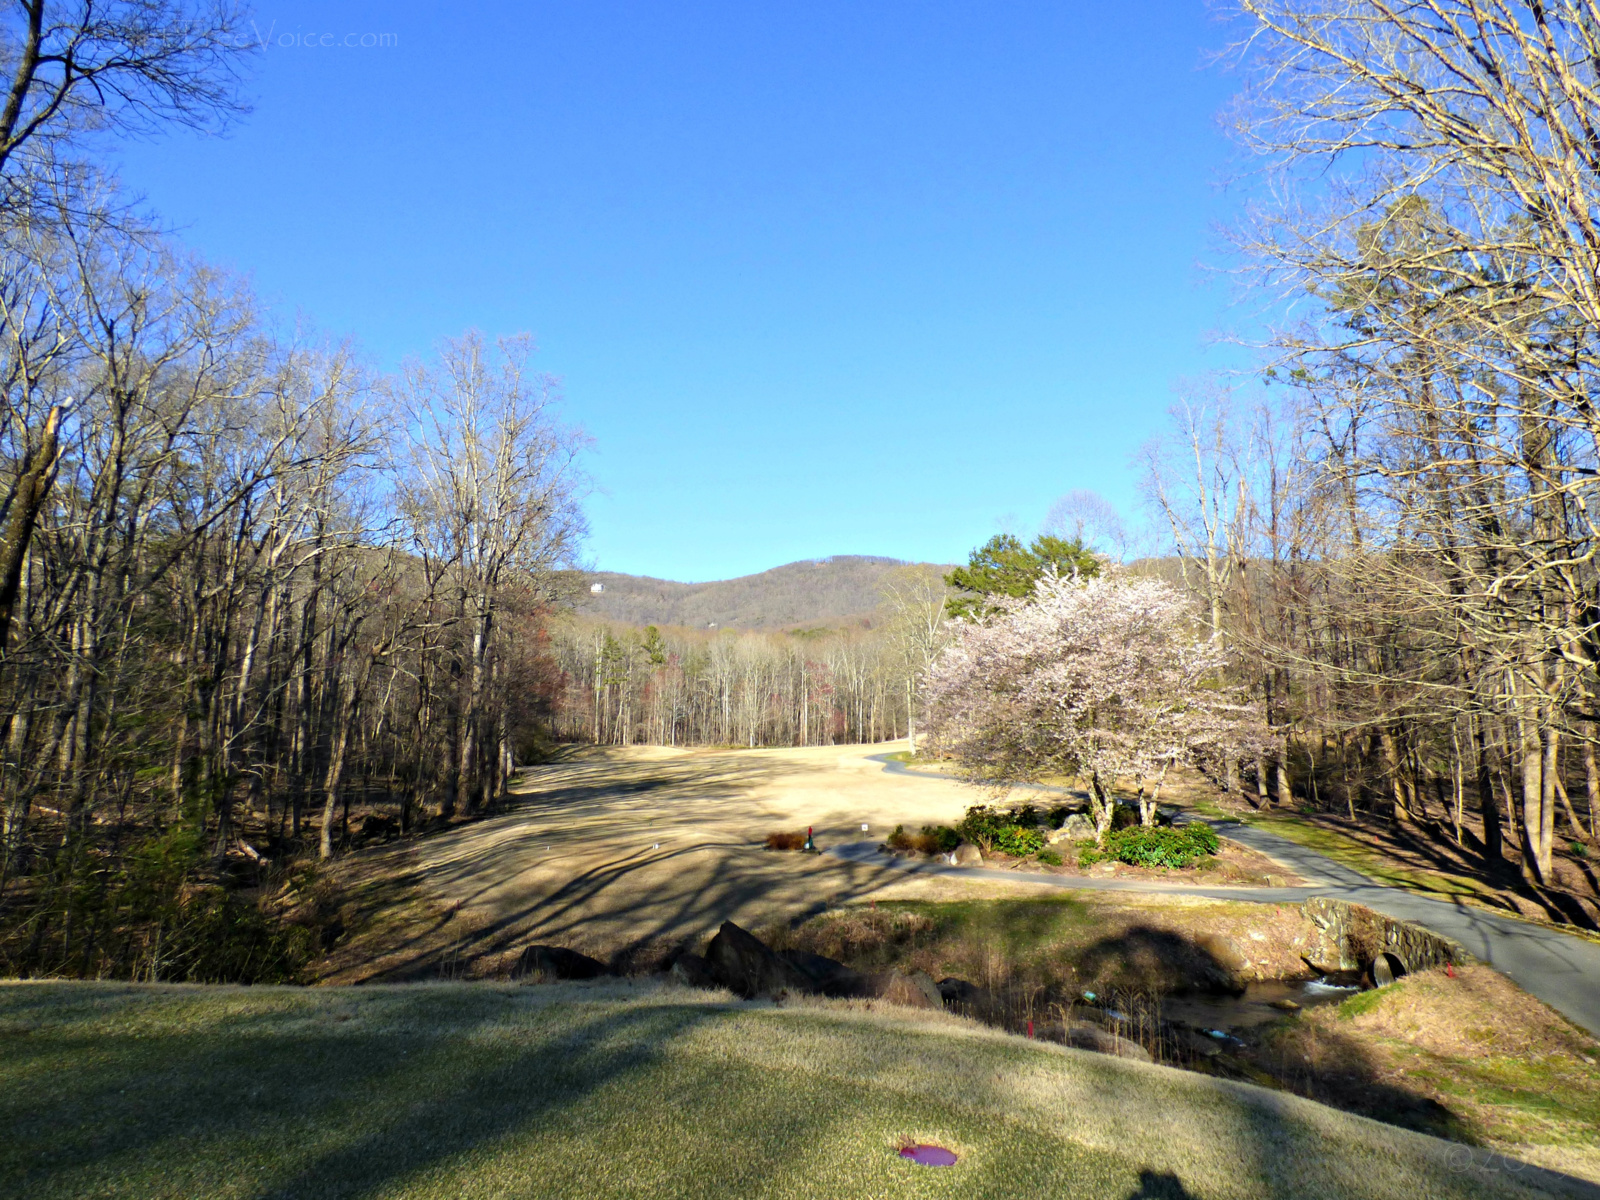 March 22, 2019 - Bent Tree's Hole 11